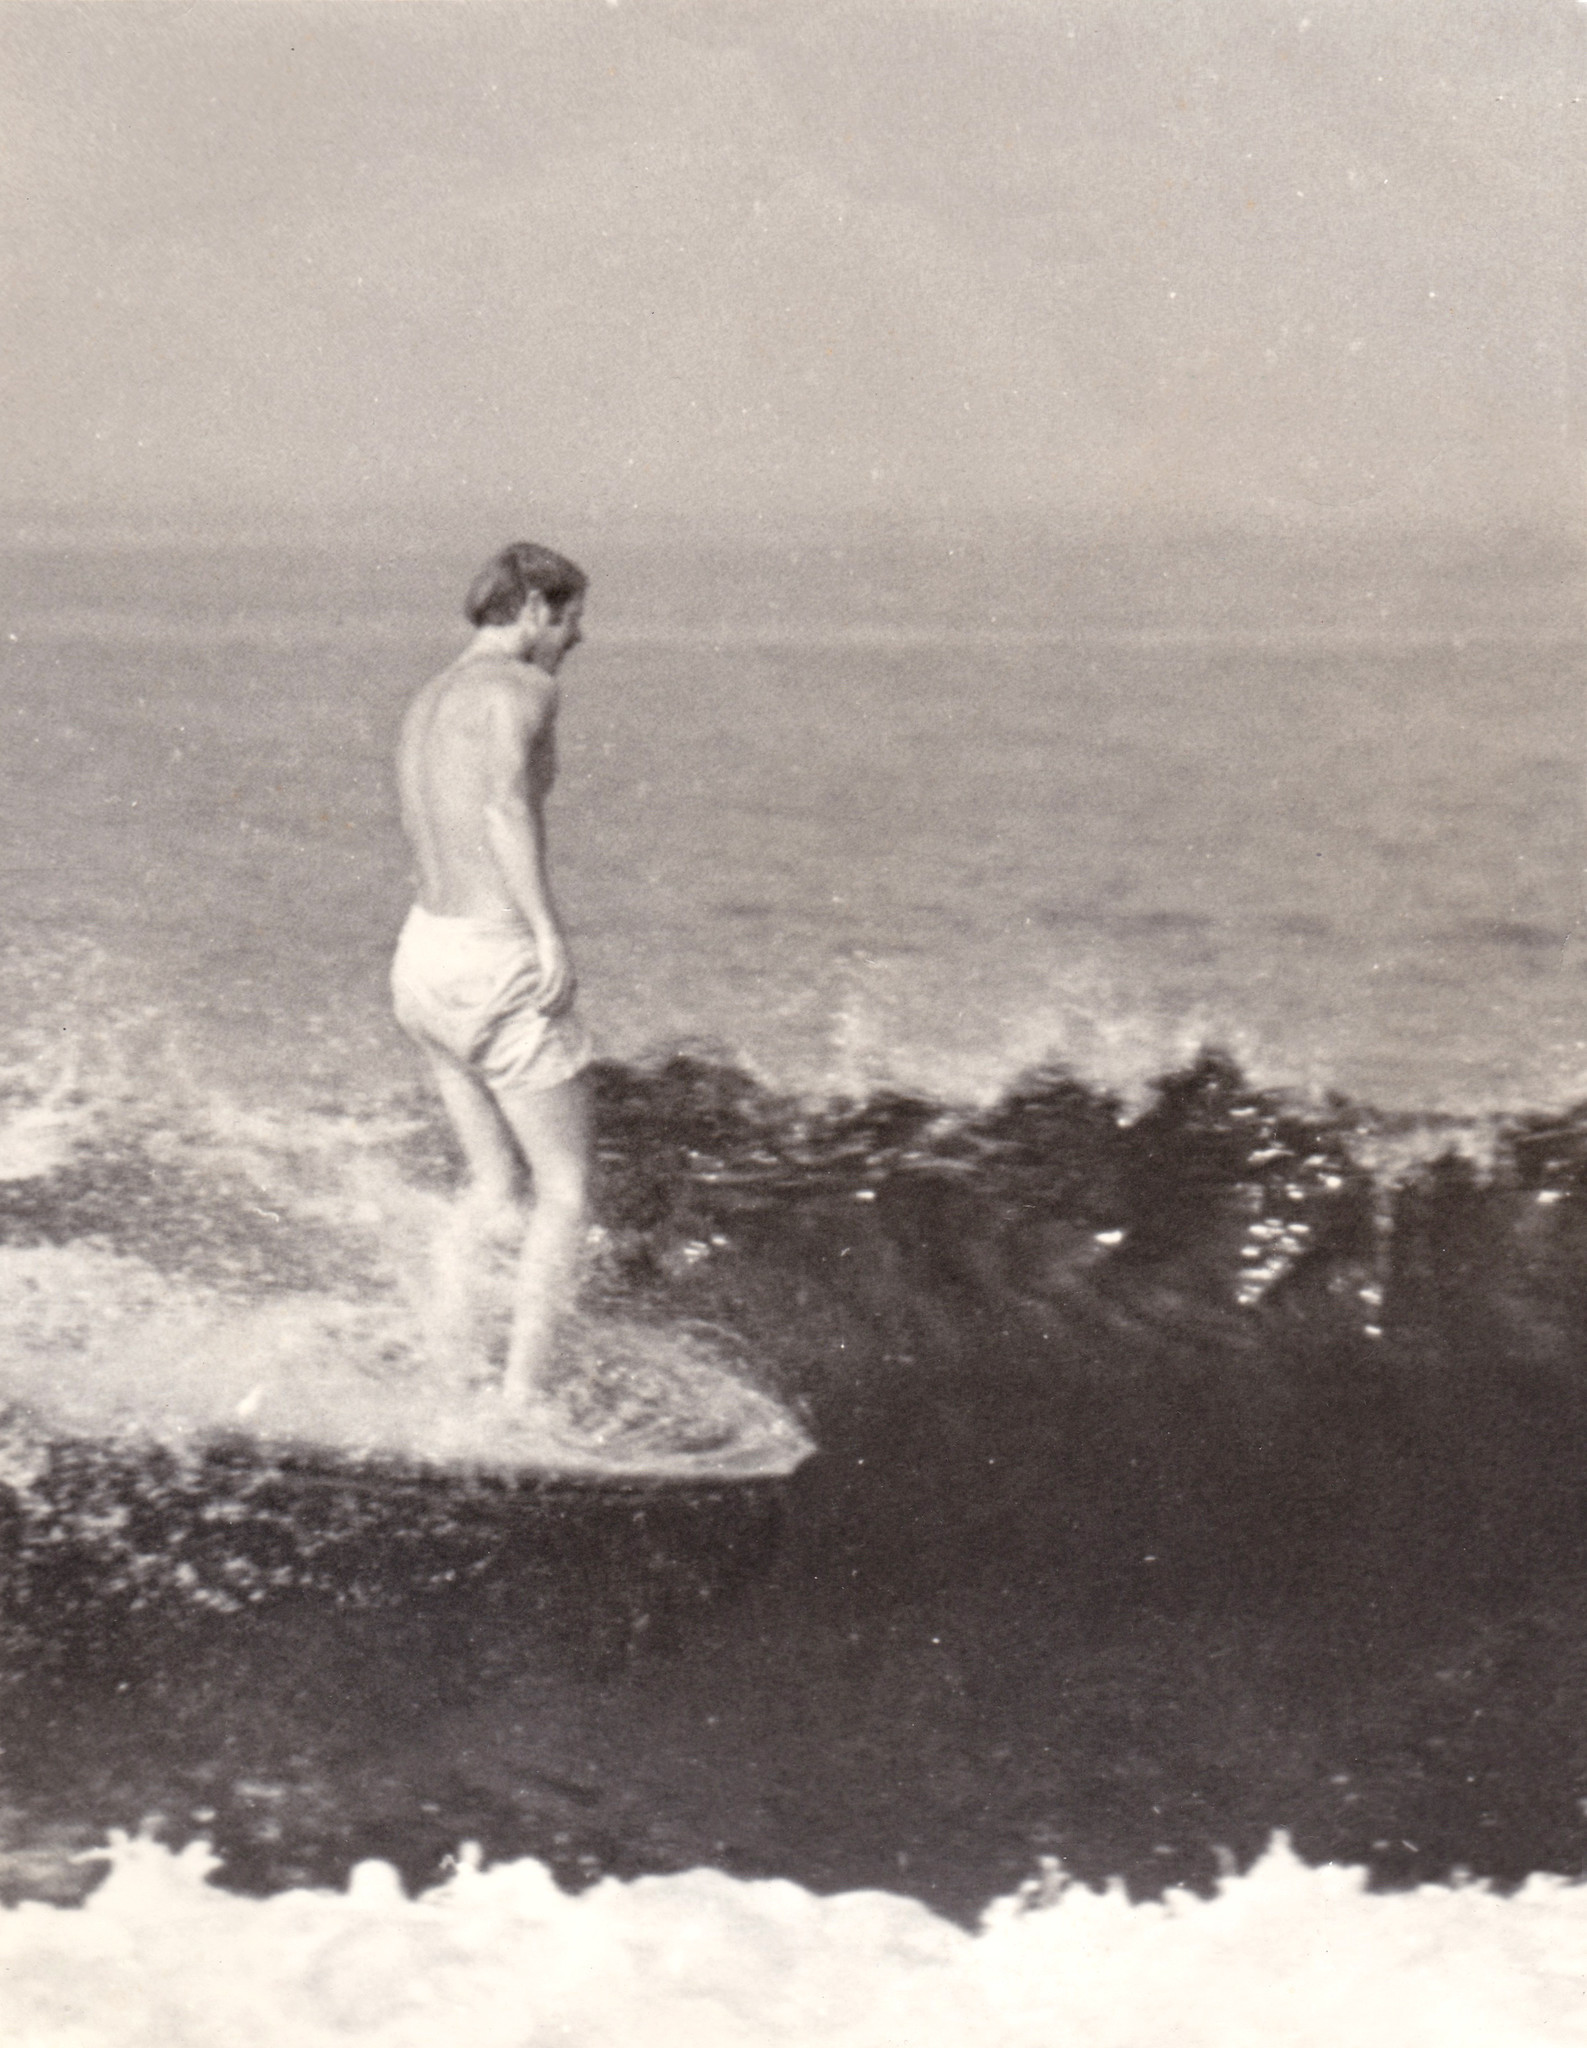 Bill Andrews rides a wave in earlier days.